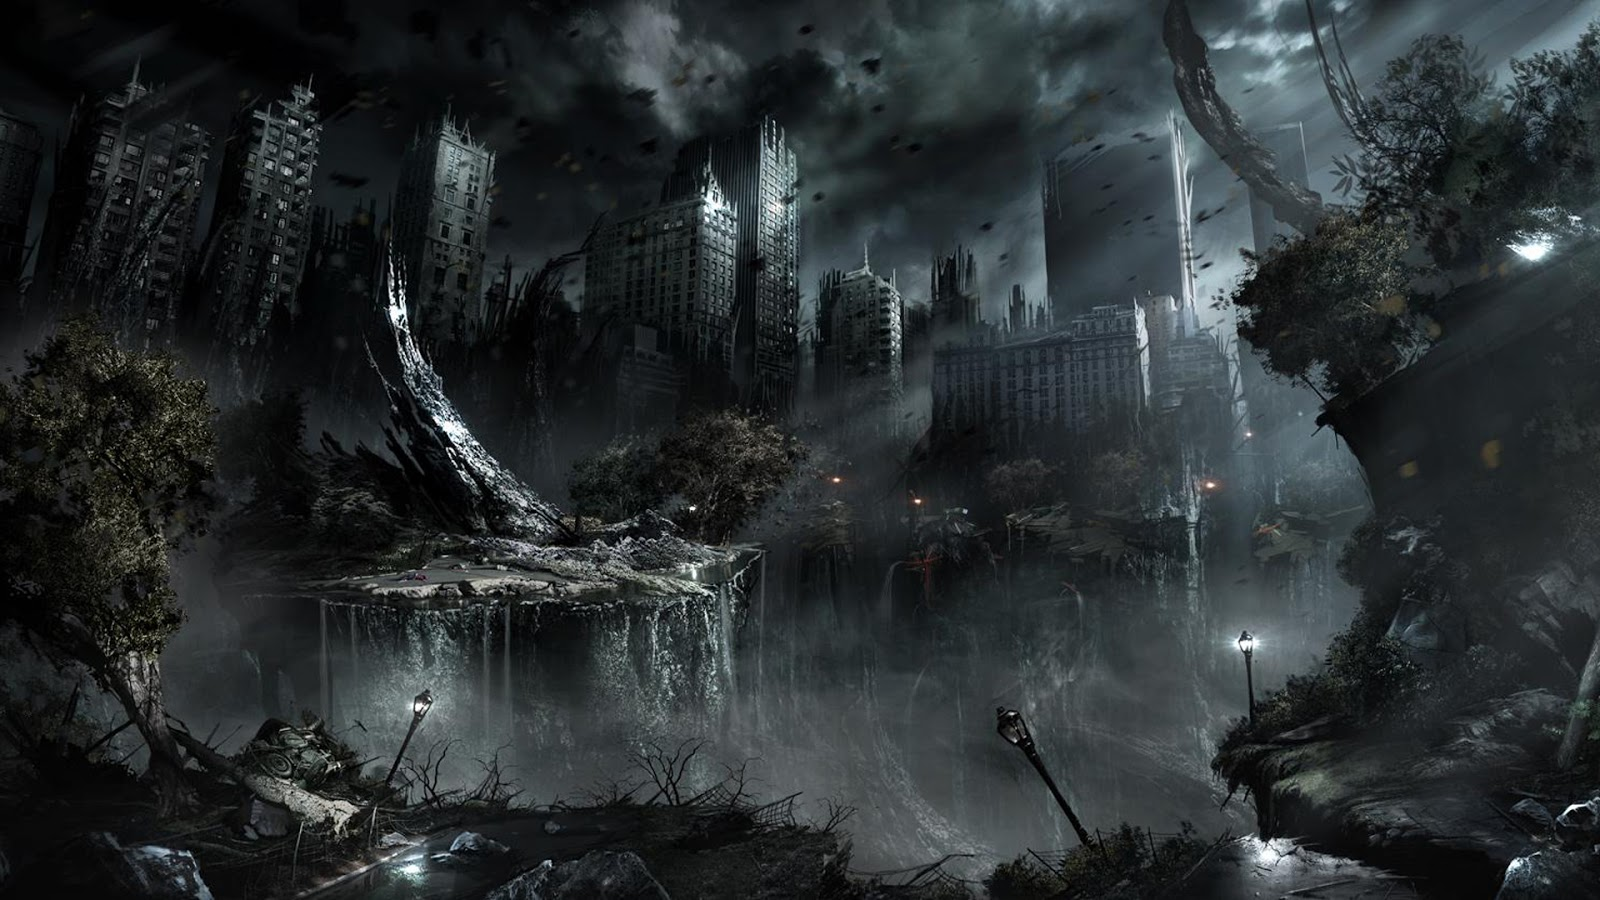 world wildness web post apocalyptic wallpapers